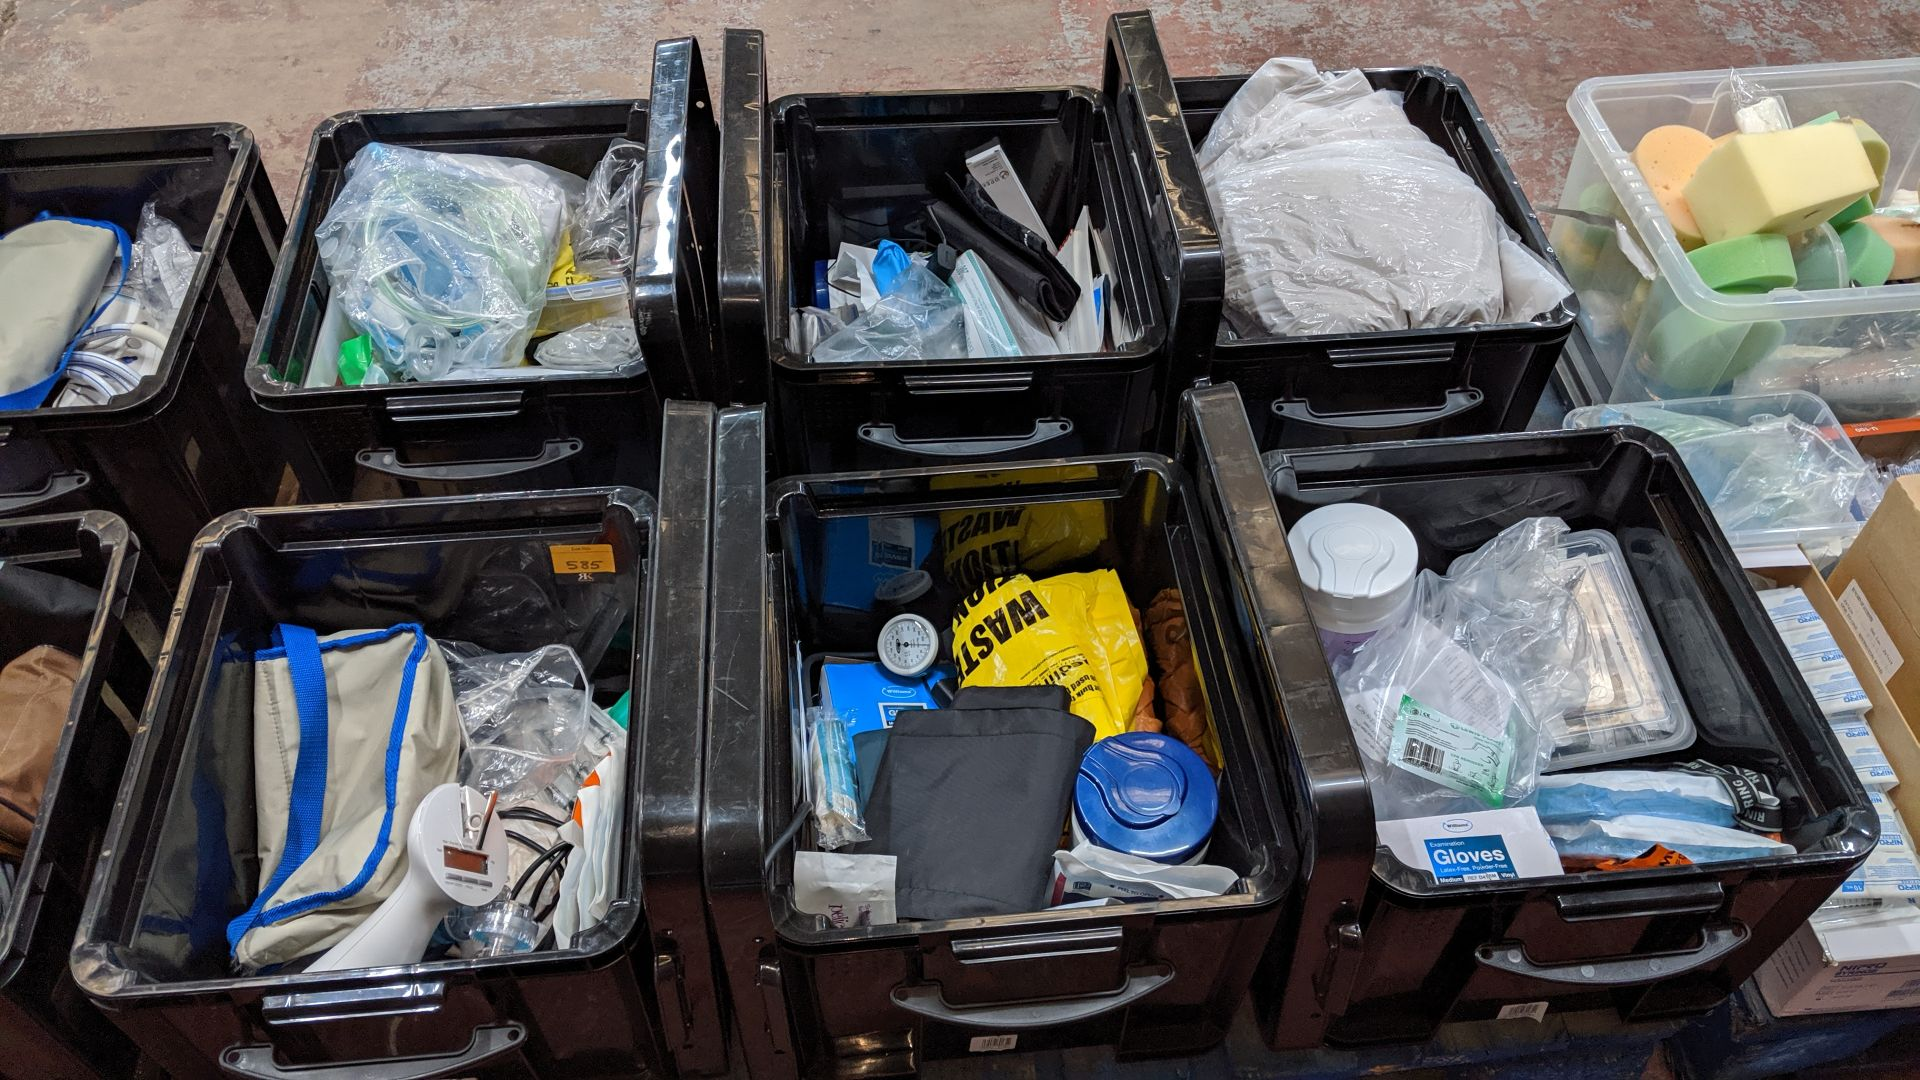 Lot 585 - Contents of 6 crates of assorted medical supplies including blood pressure monitoring equipment,